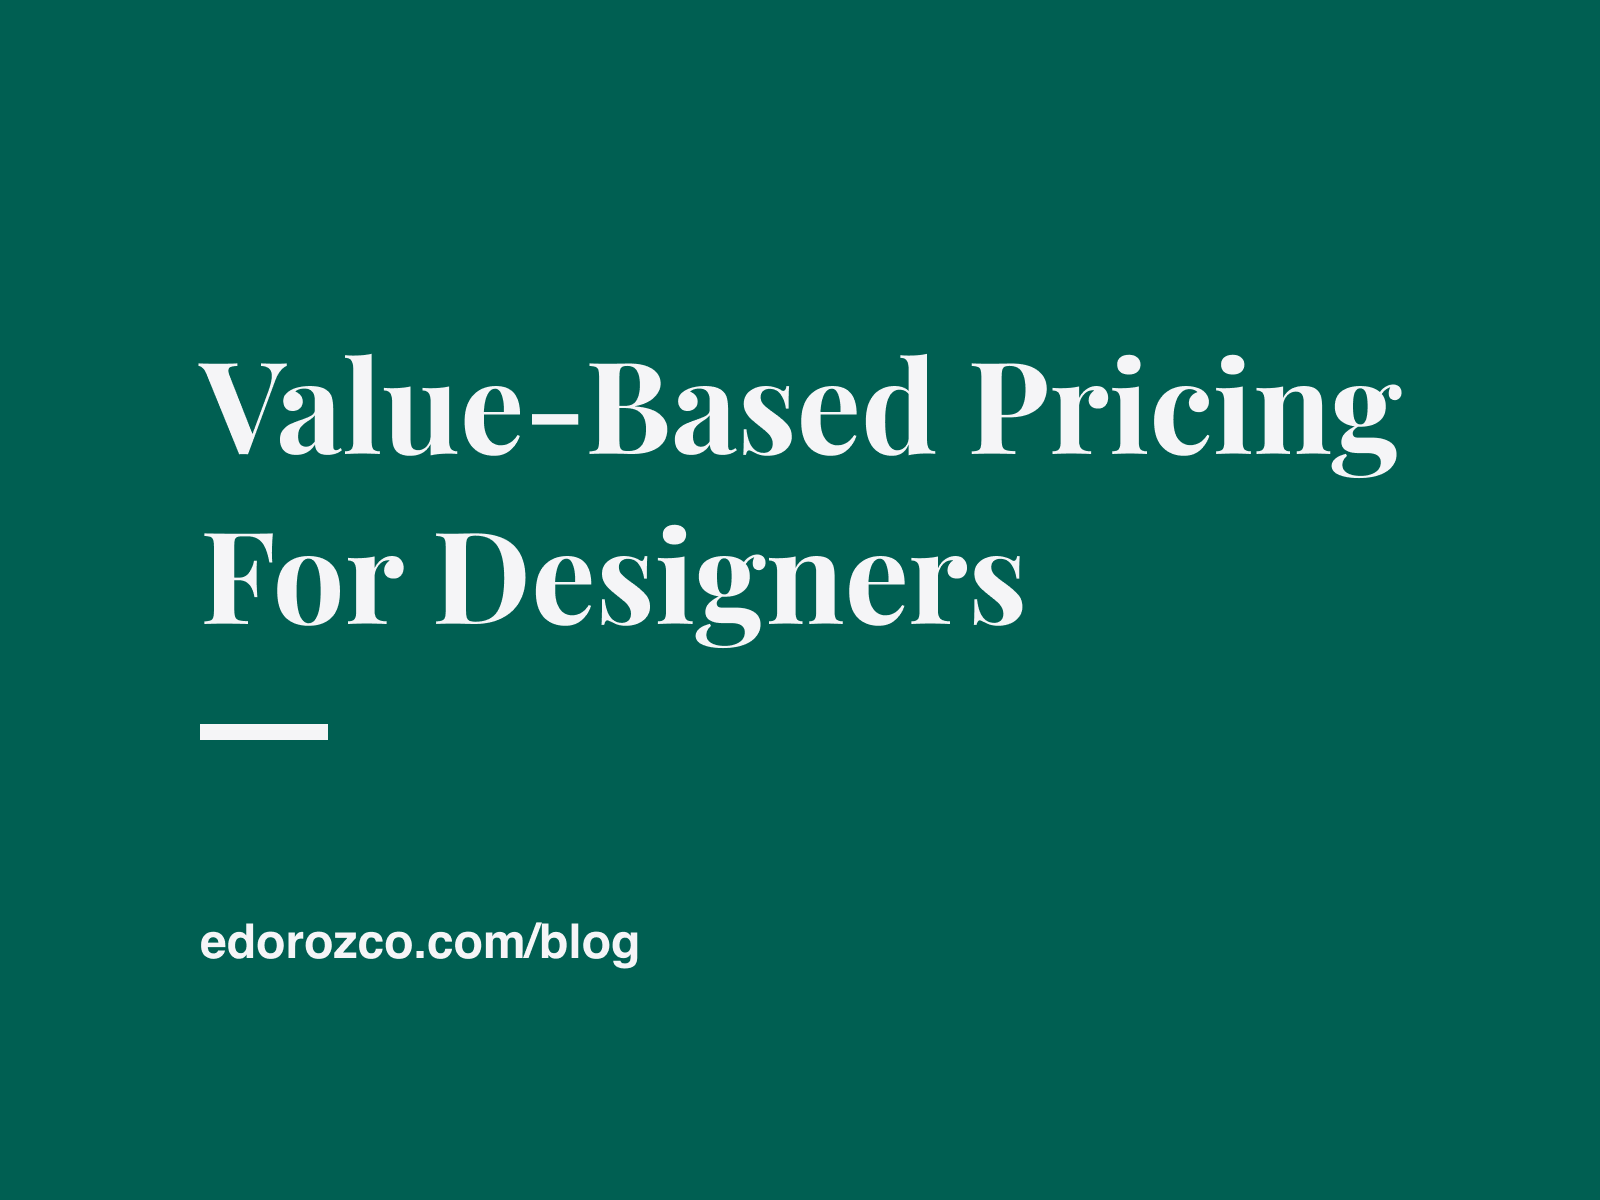 Value-Based Pricing For Designers - by Ed Orozco Helping Design Agencies Scale